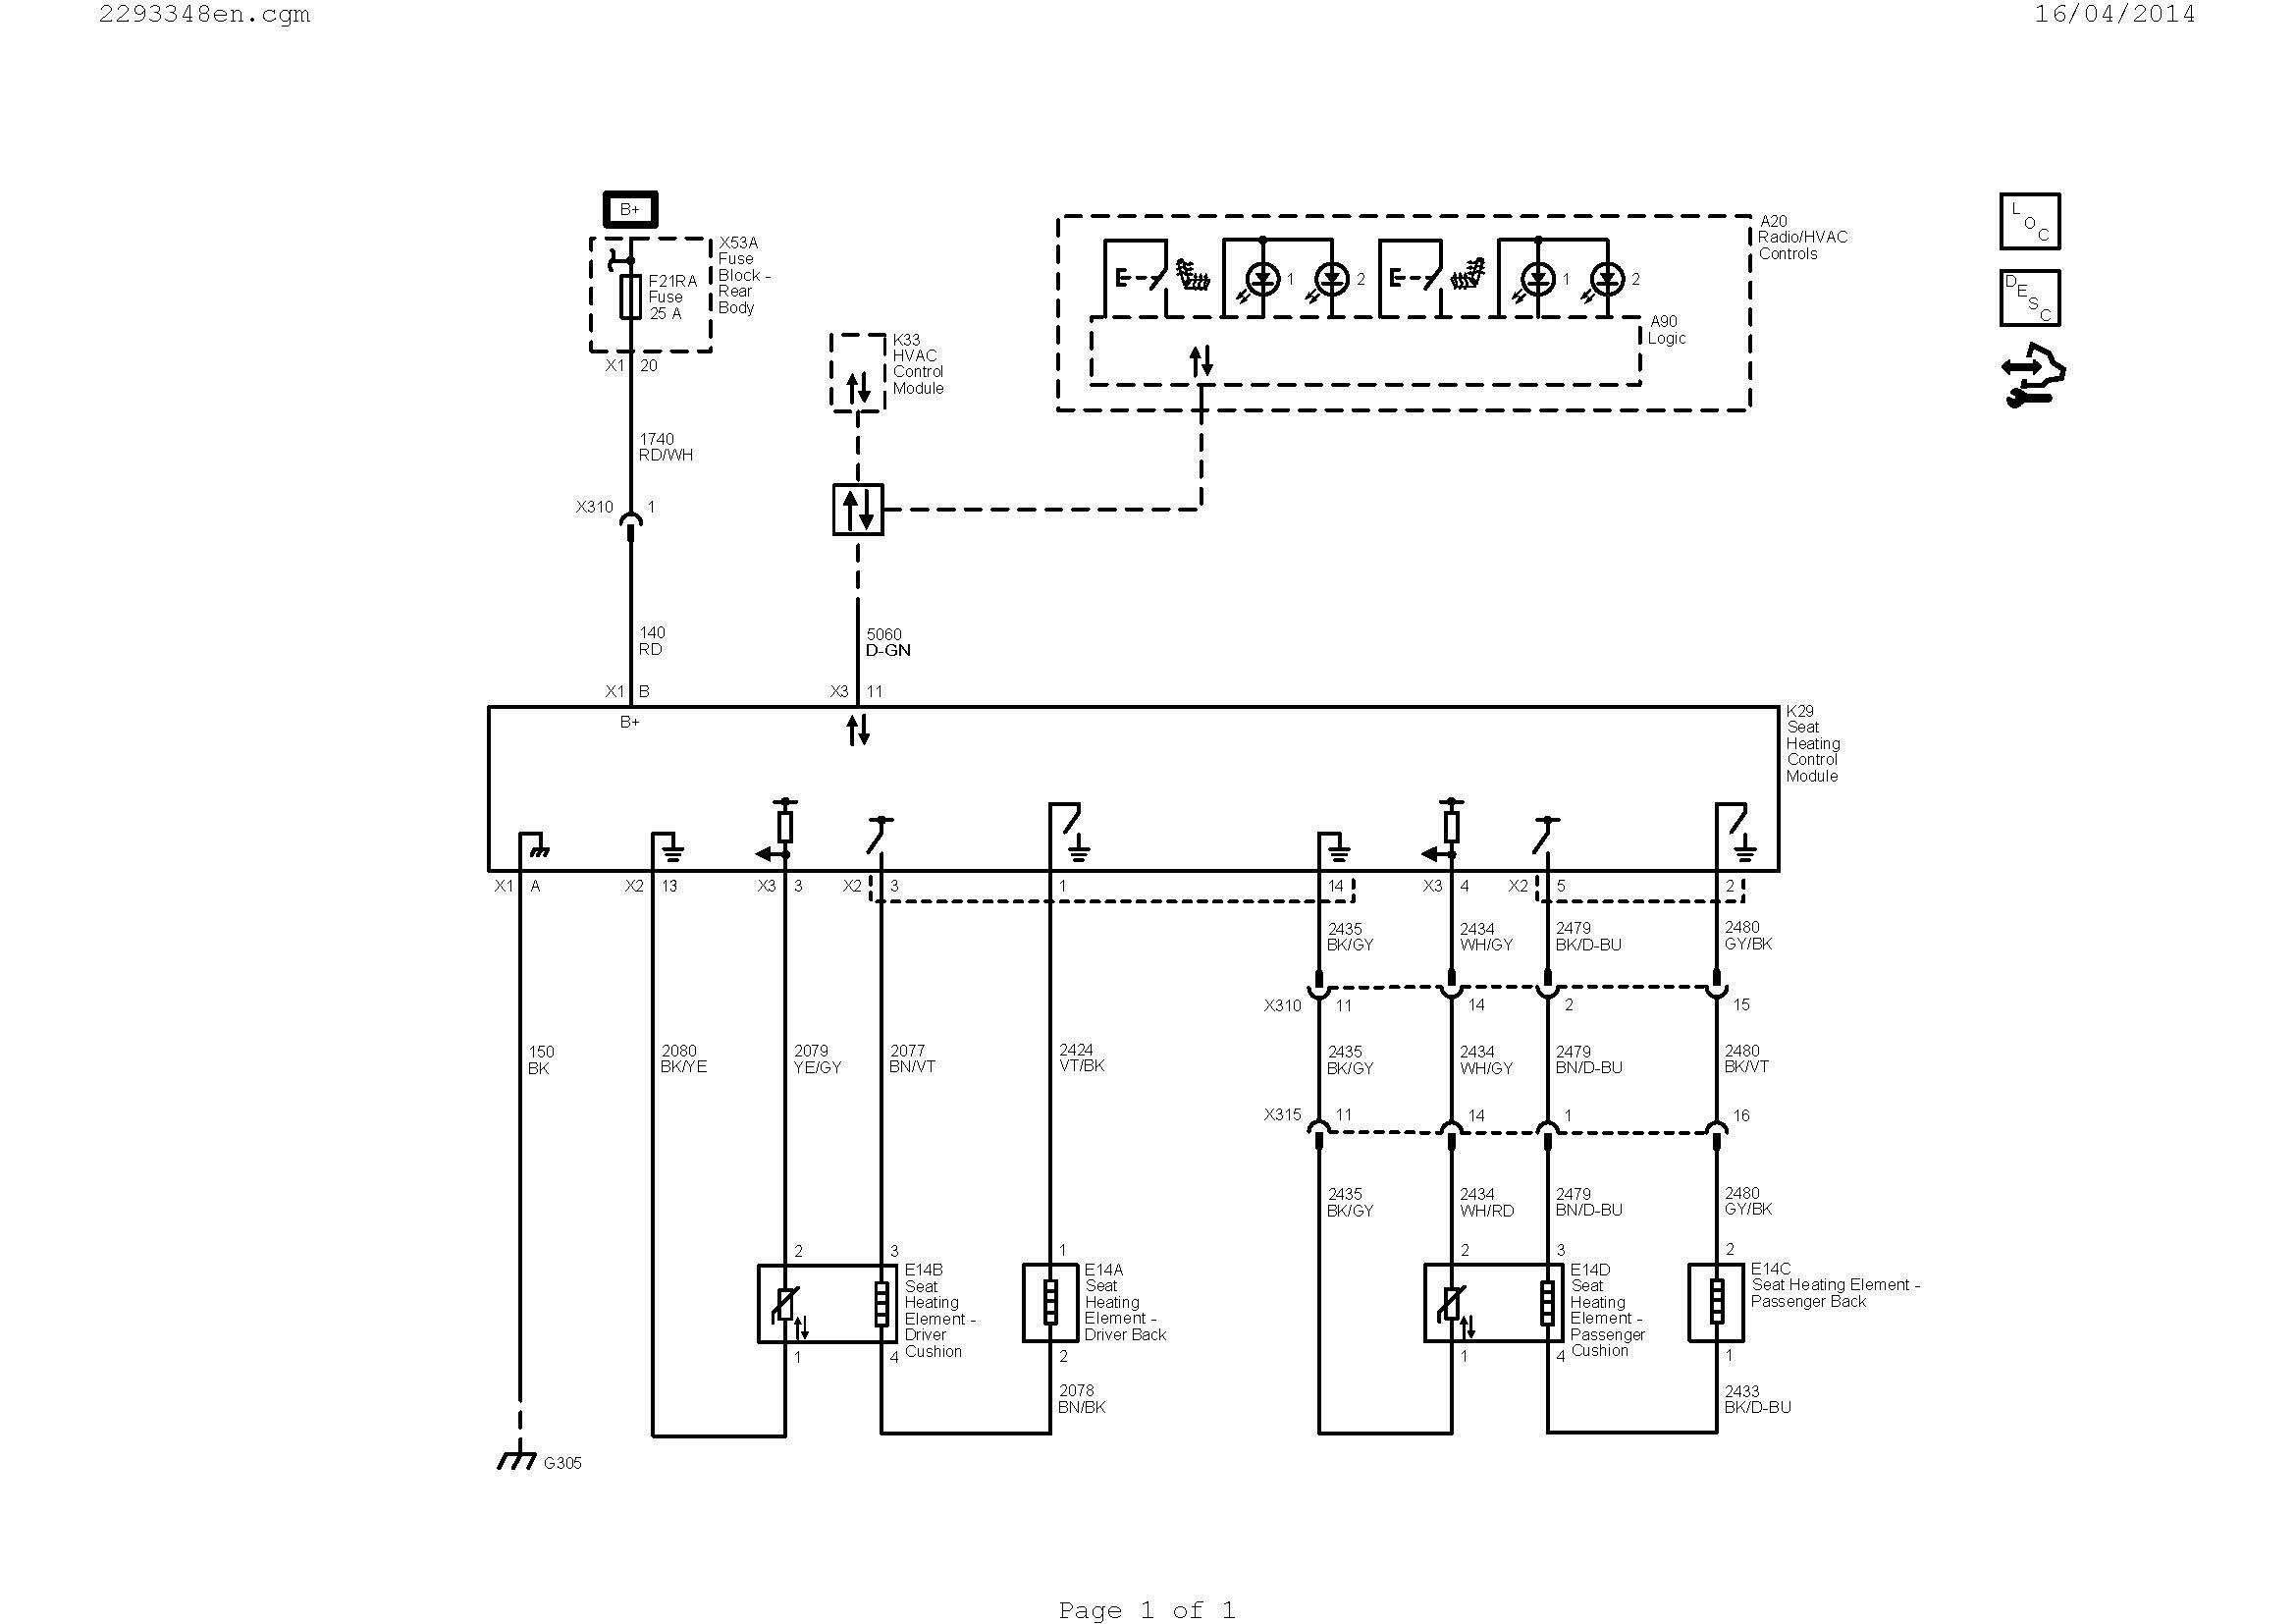 dometic thermostat wiring diagram Download-dometic thermostat wiring diagram Download Wiring A Ac Thermostat Diagram New Wiring Diagram Ac Valid 20-r